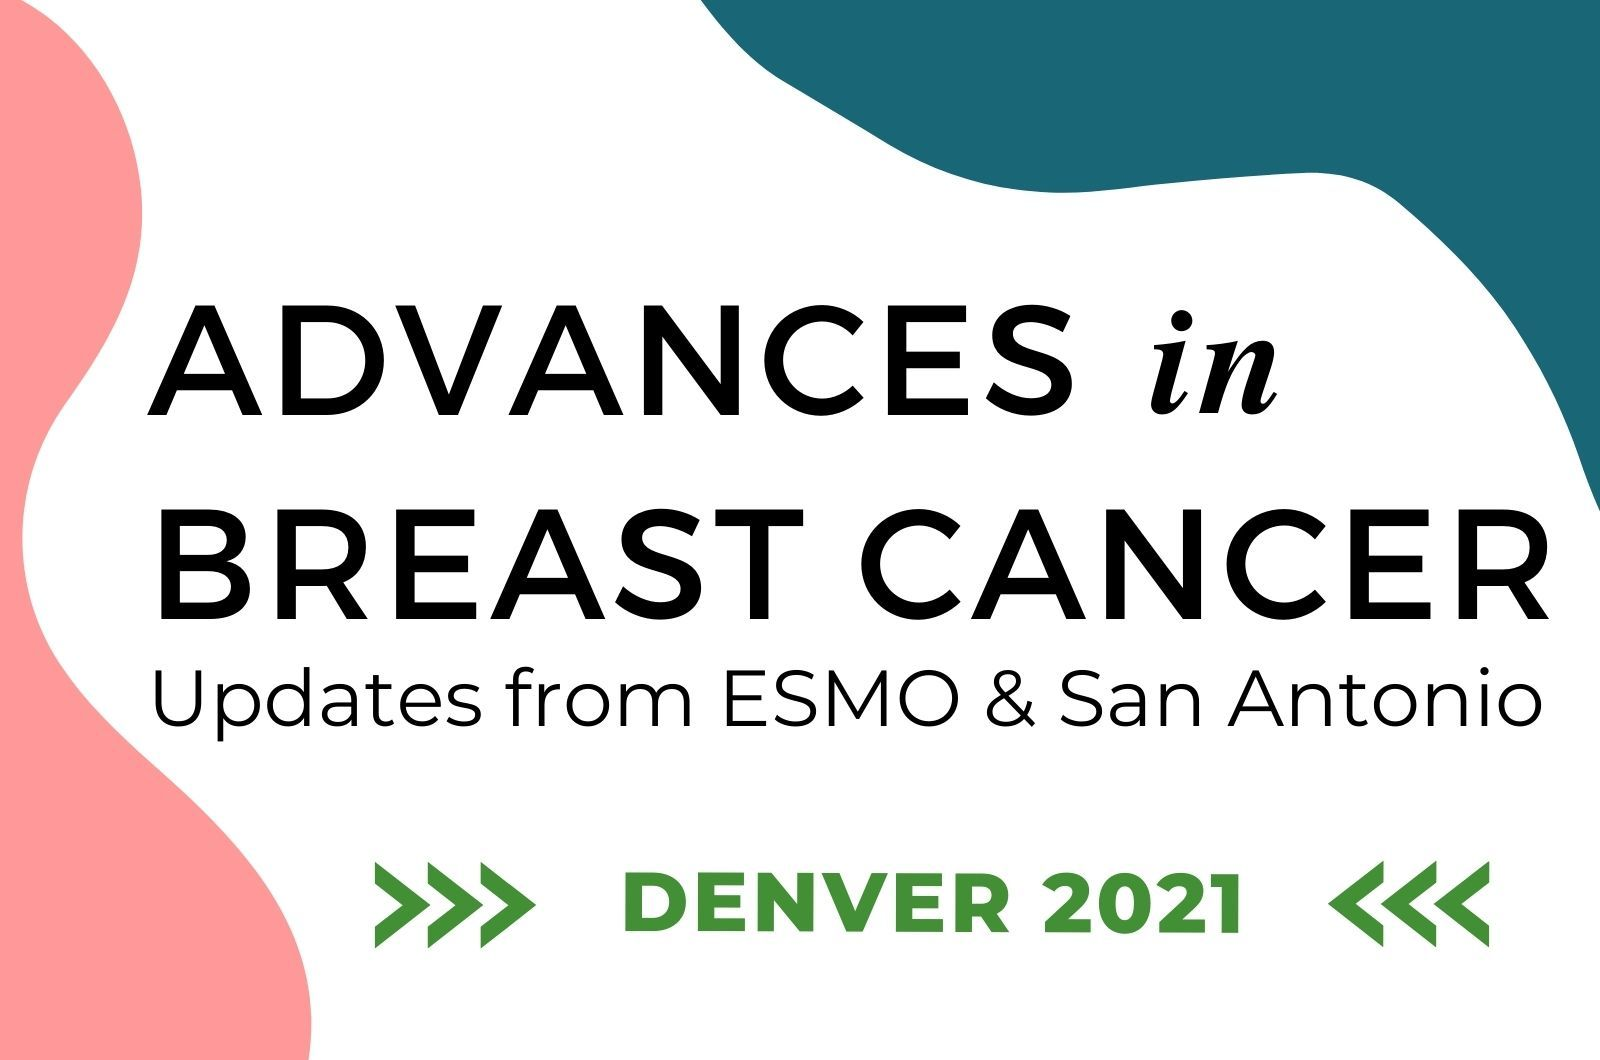 Advances in Breast Cancer Denver